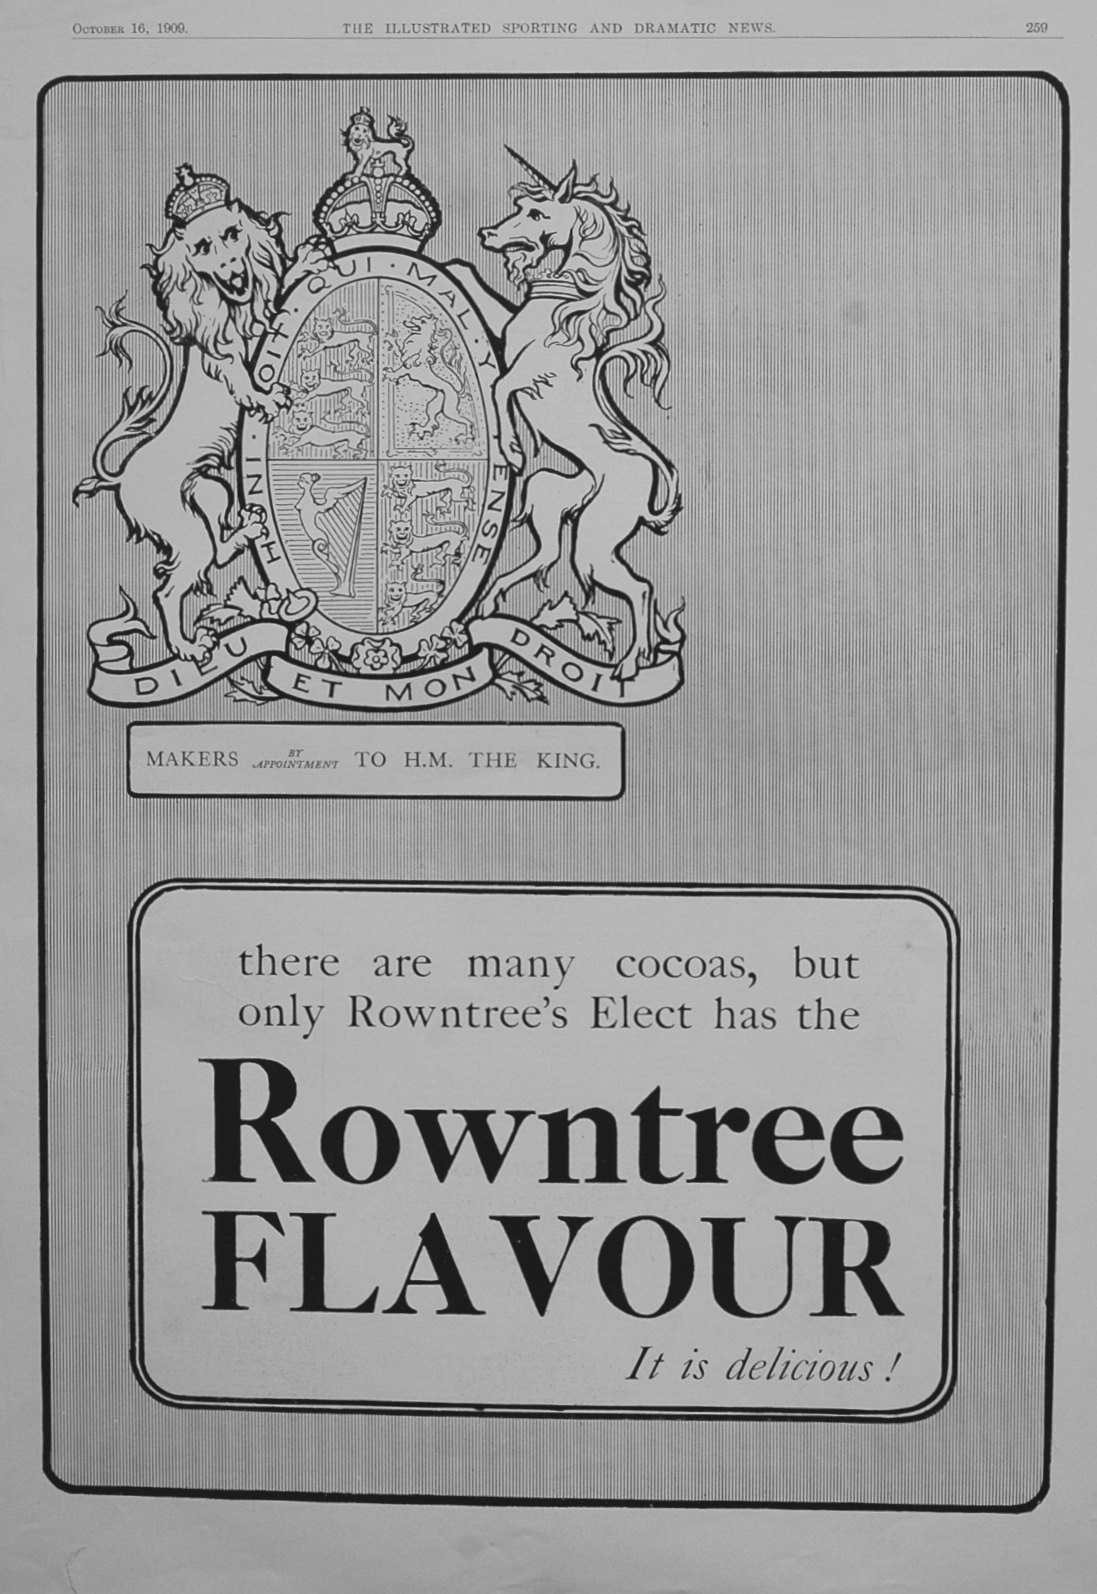 Advert for